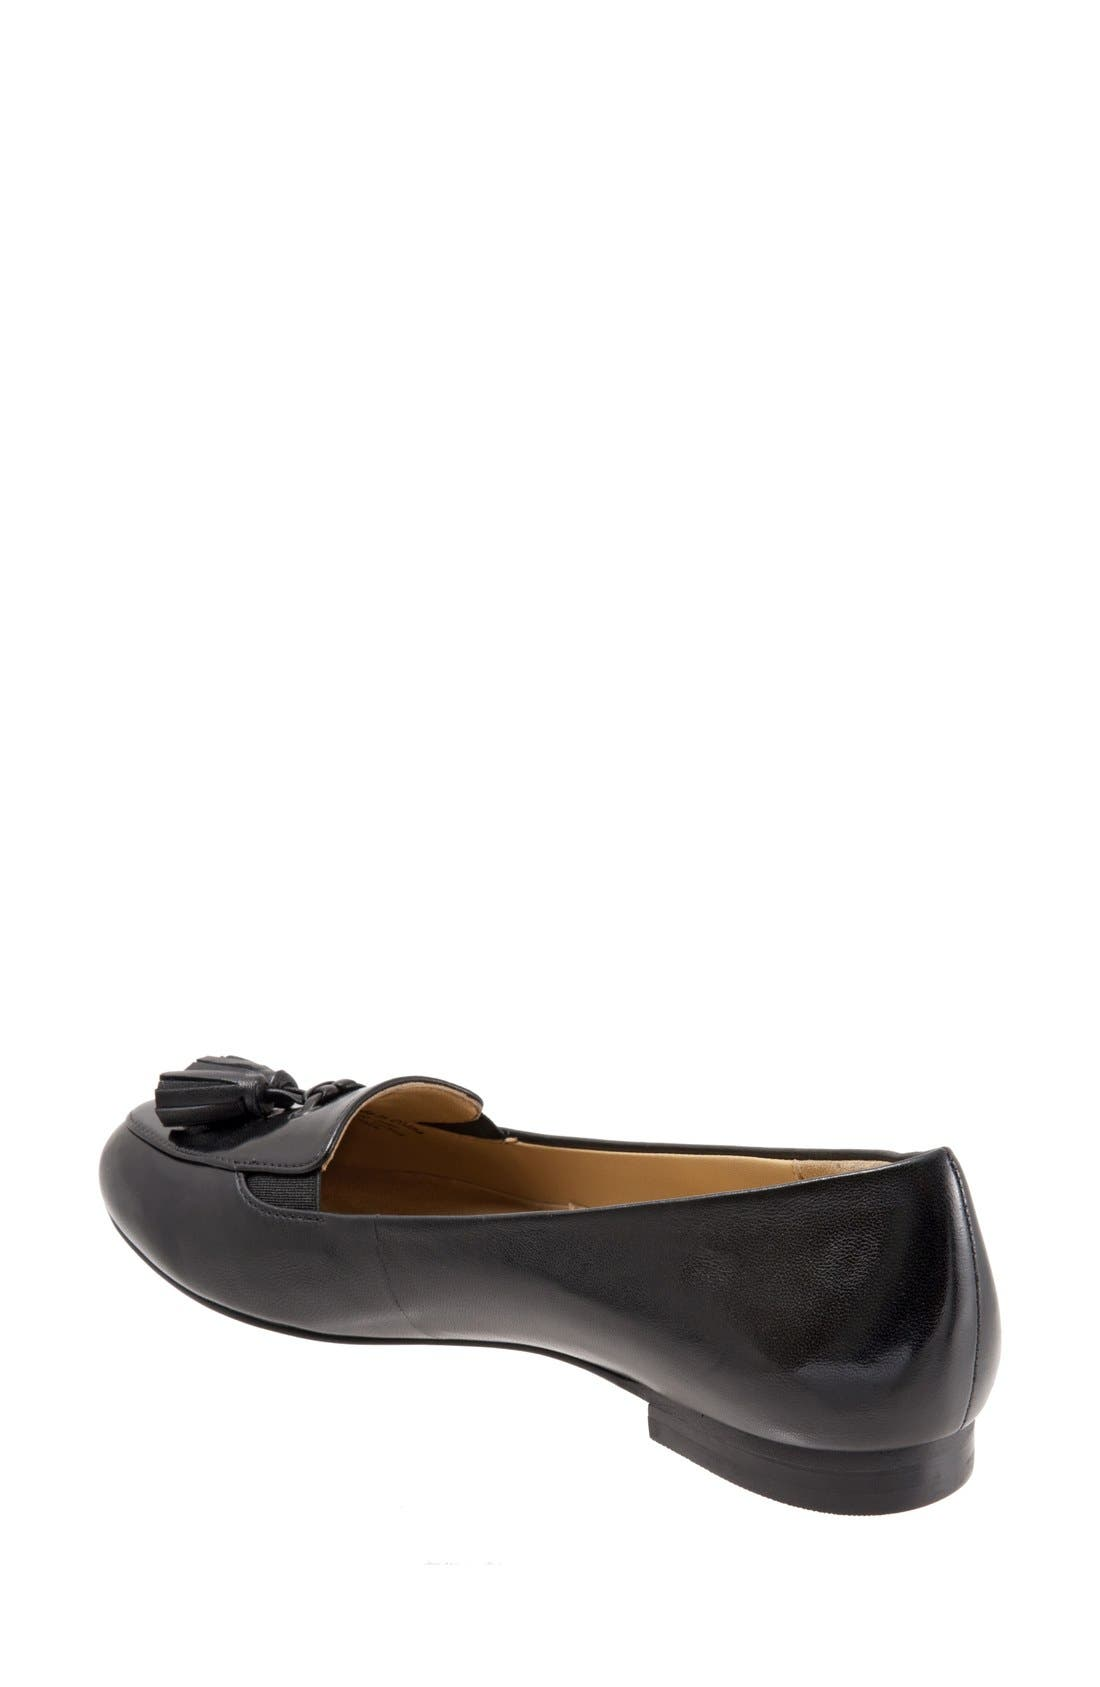 TROTTERS, 'Caroline' Tassel Loafer, Alternate thumbnail 3, color, BLACK LEATHER